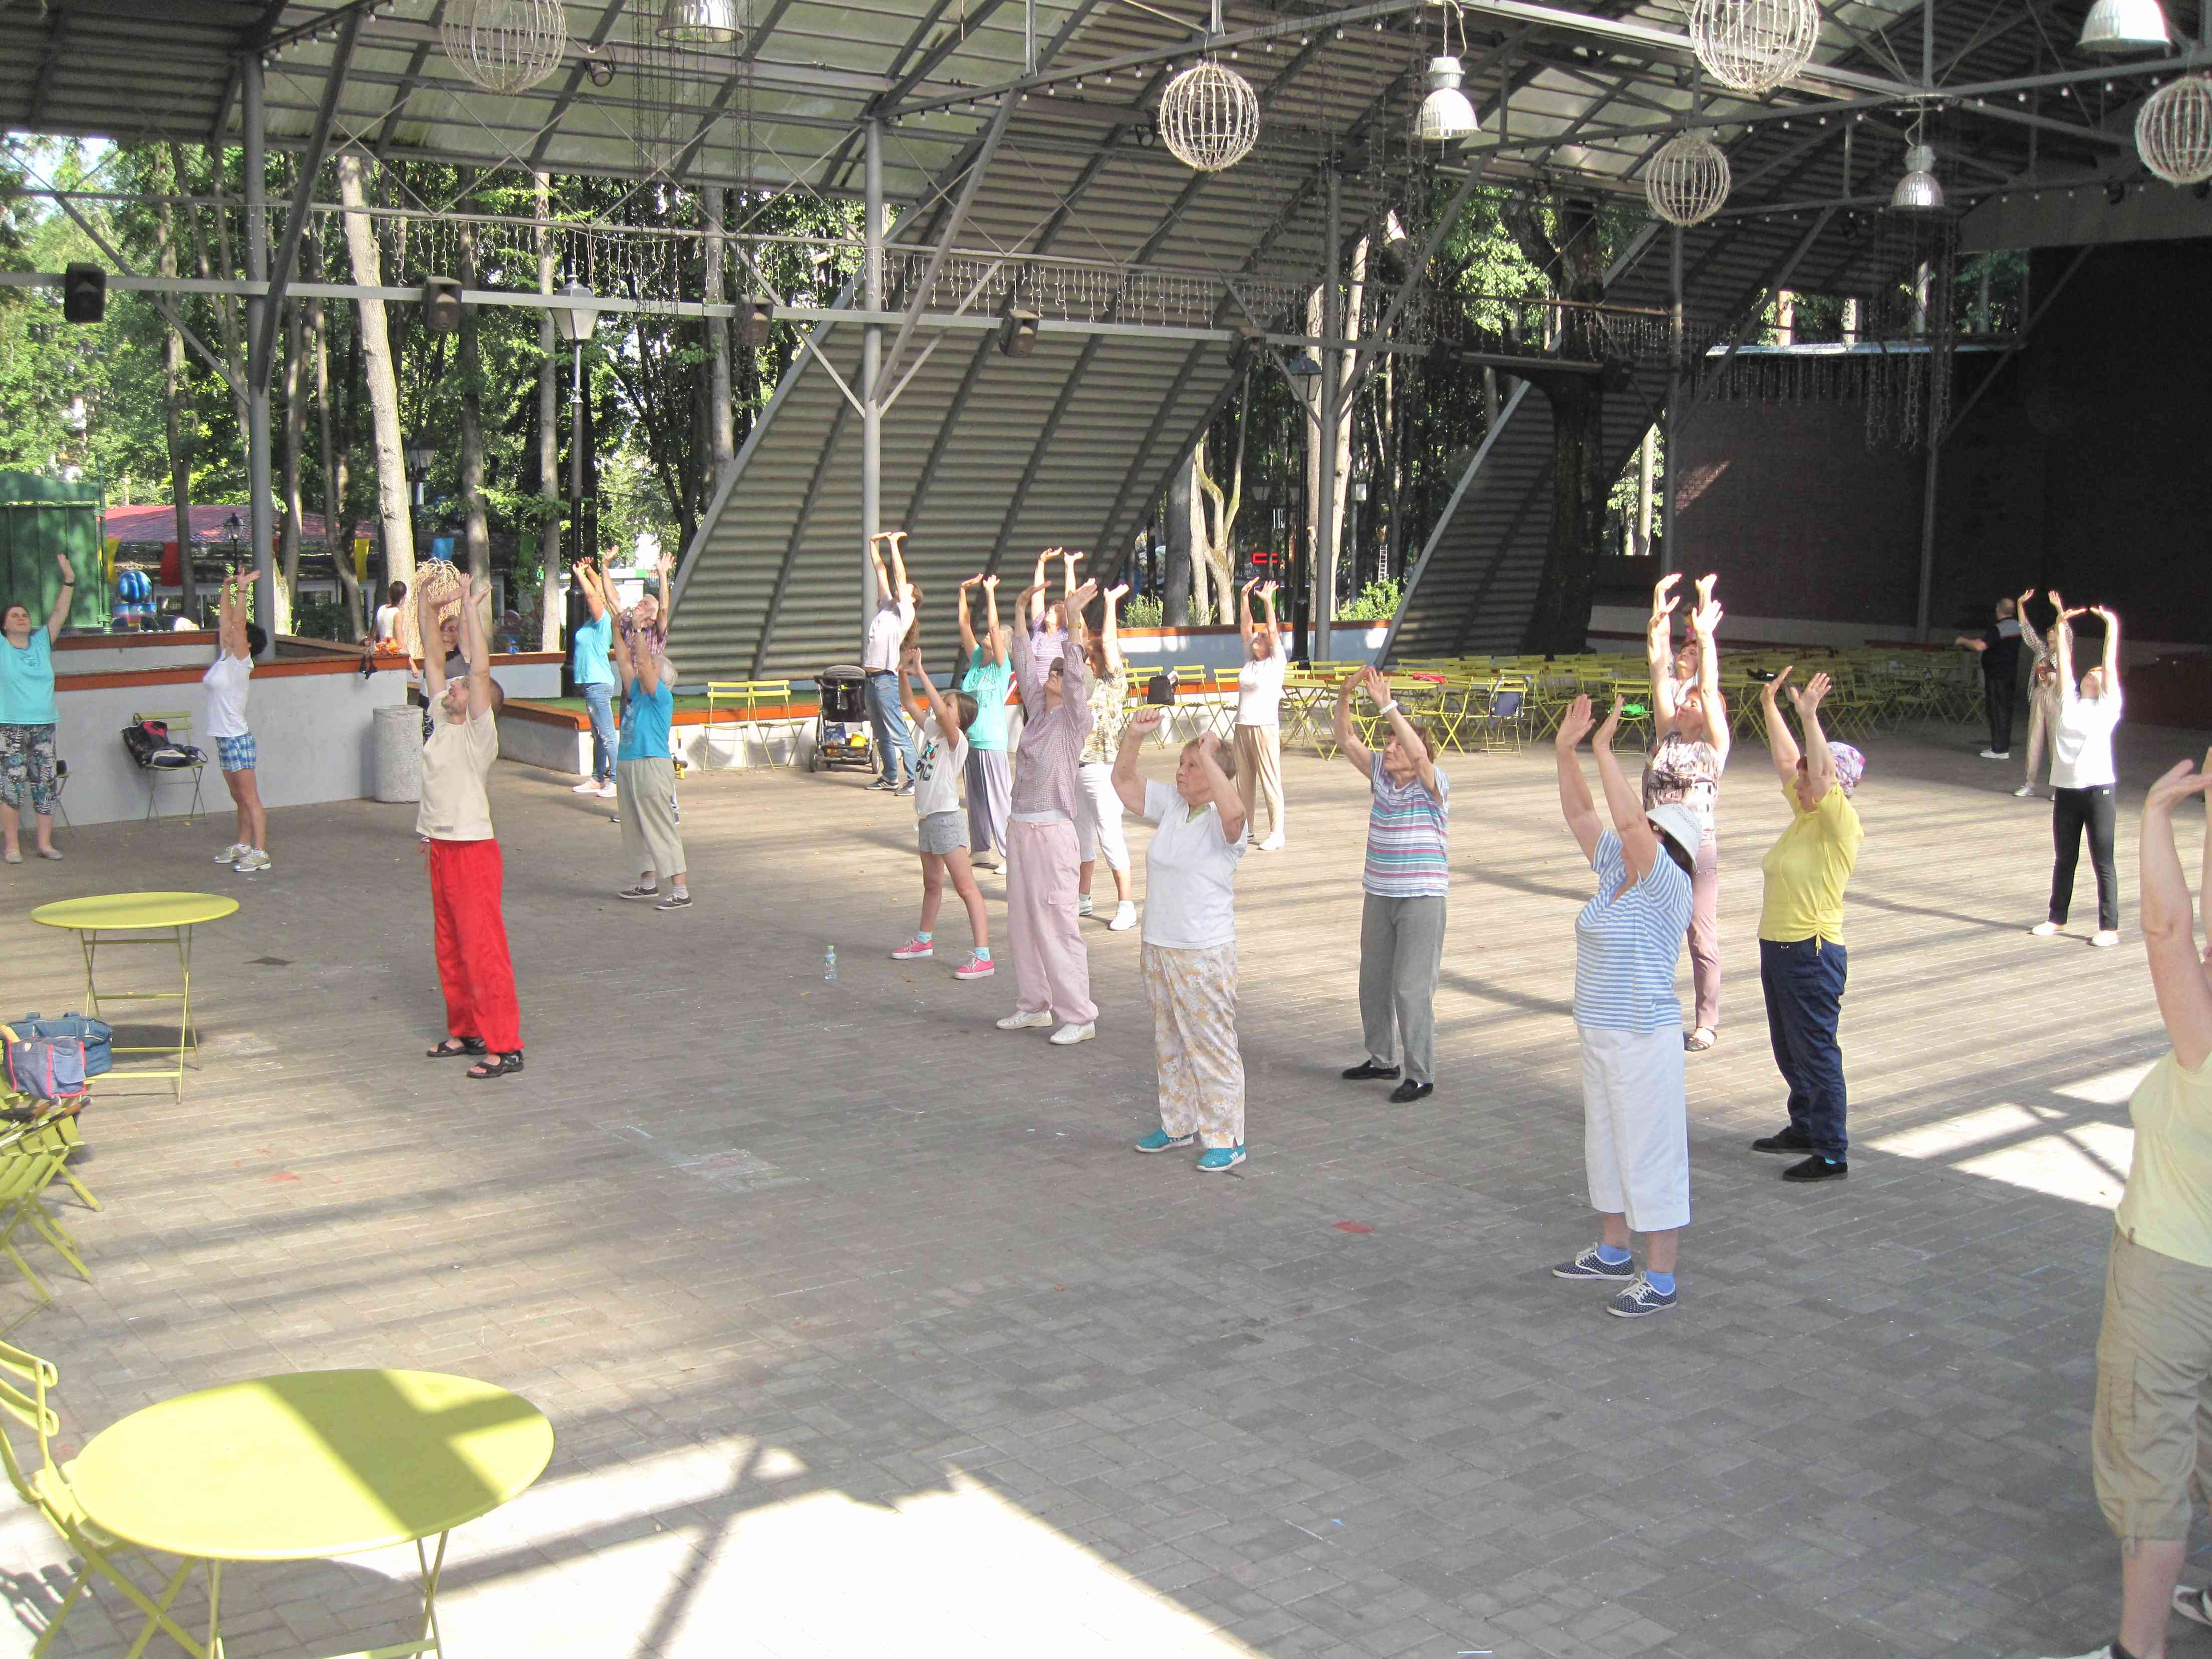 Babushkinsky Park of Culture and Rest in Moscow: photos, description, activities, leisure options, visitor reviews 49